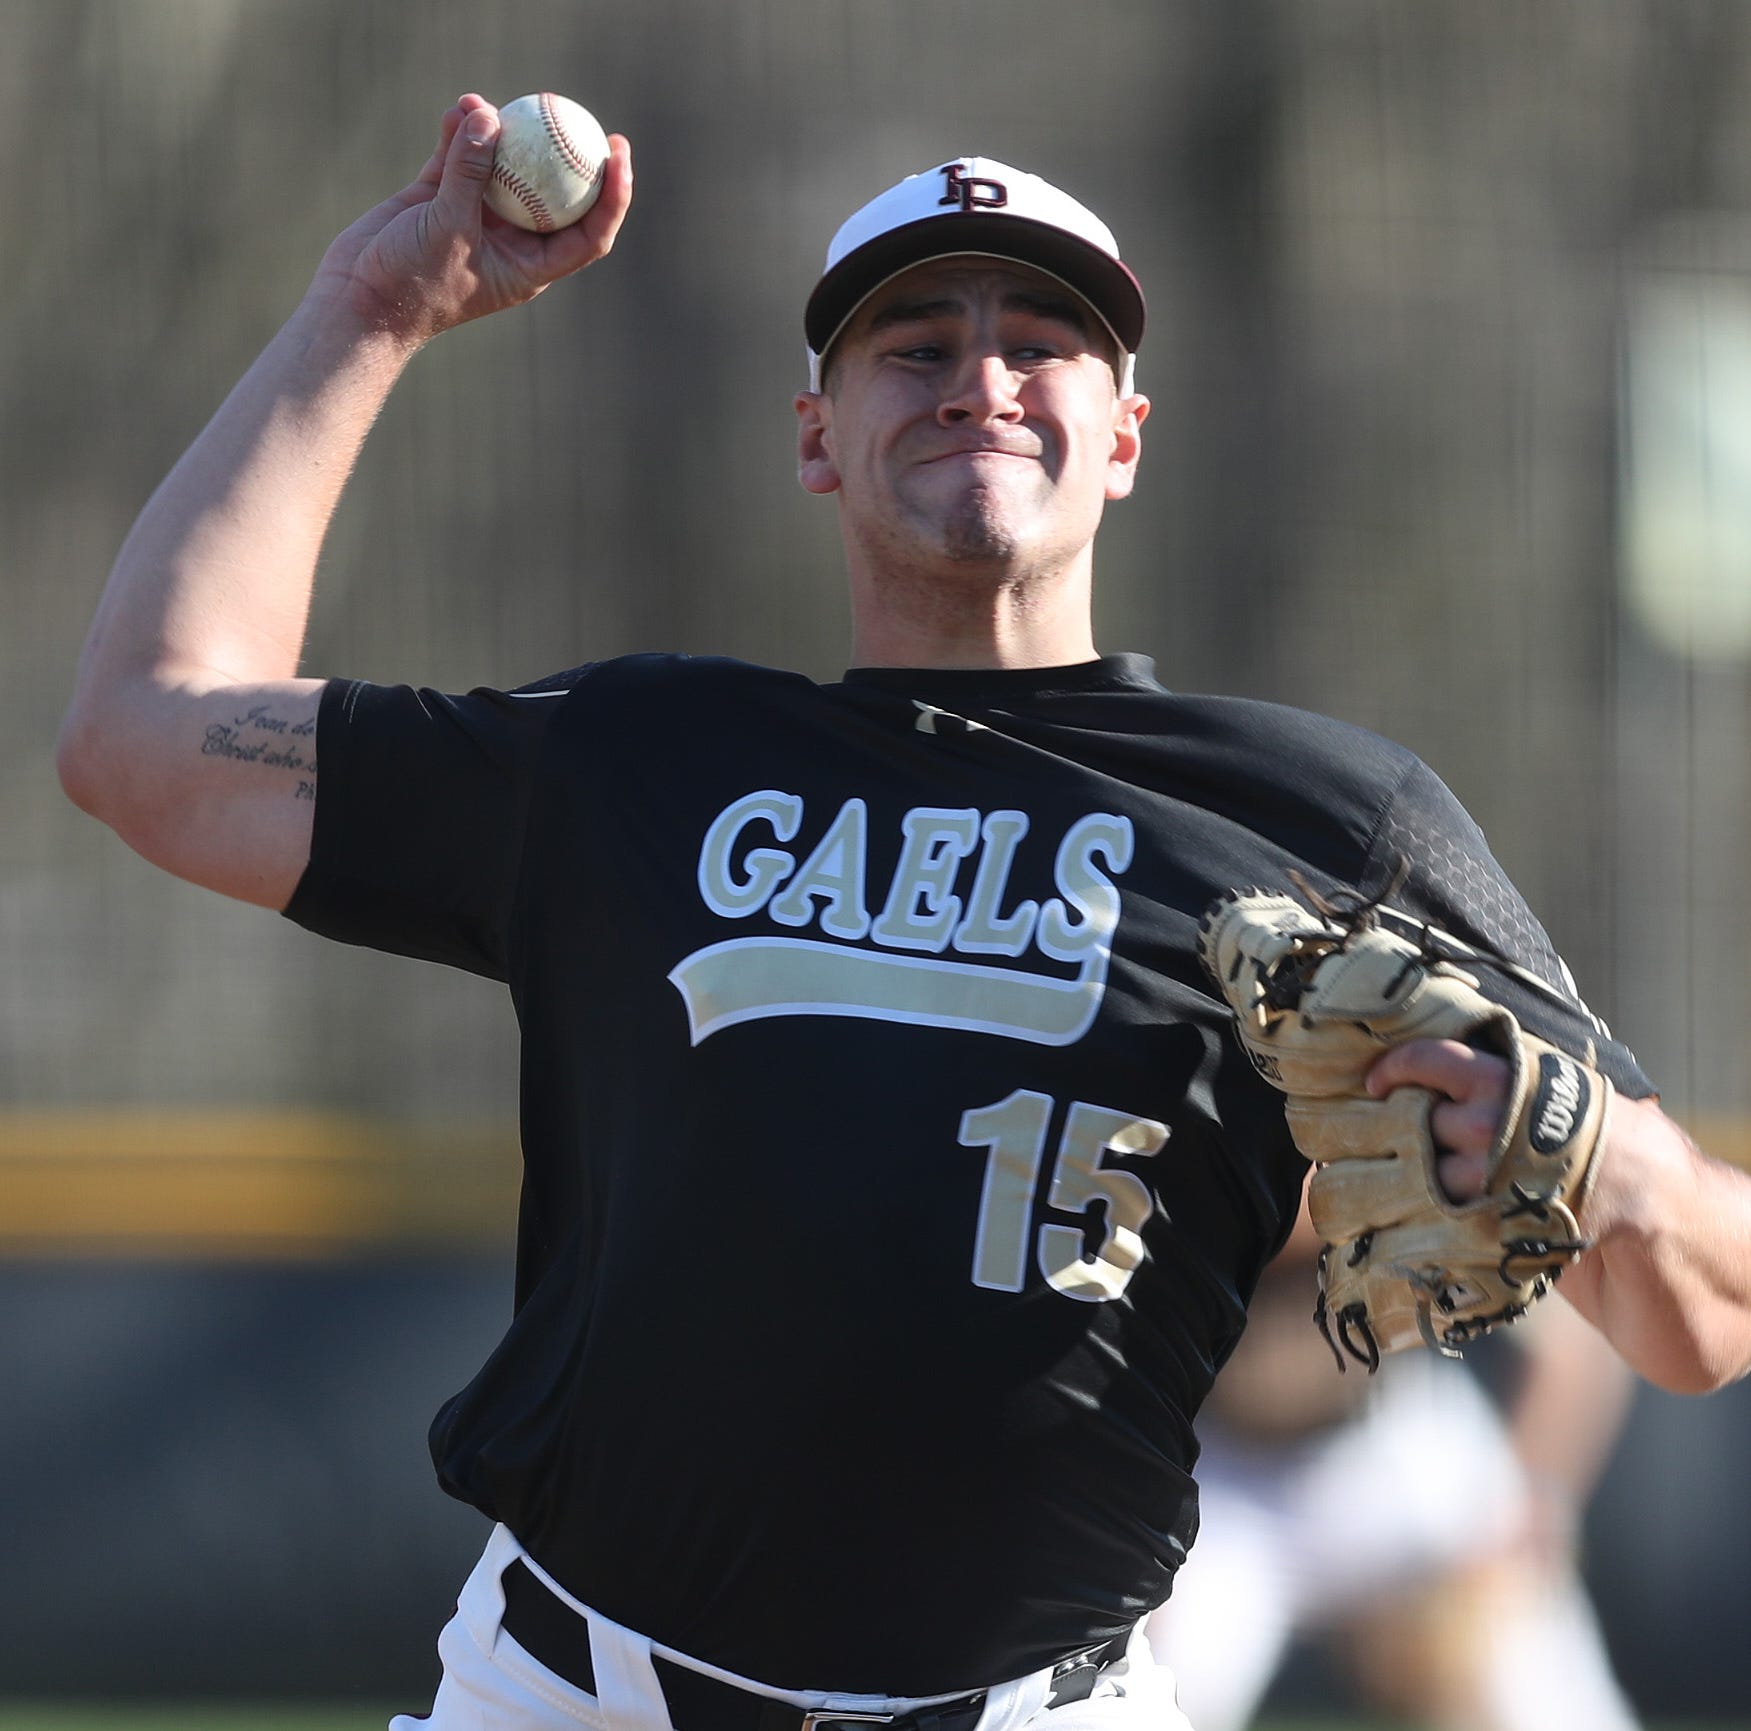 Poll: Who should be the lohud baseball Player of the Week for April 15-21?